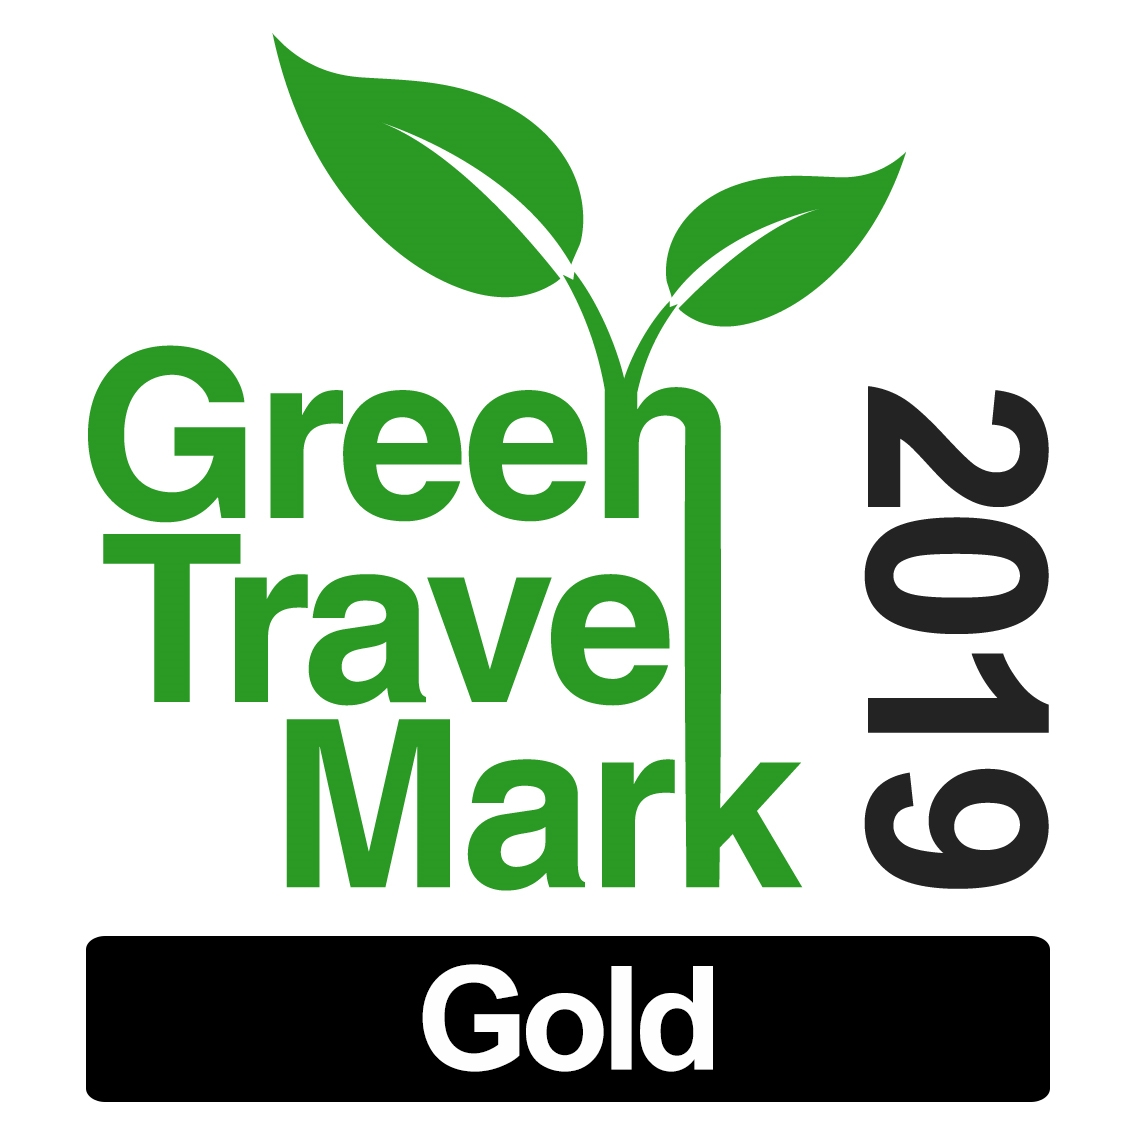 Green Travel Mark 2019 - Well done Skinner Street!